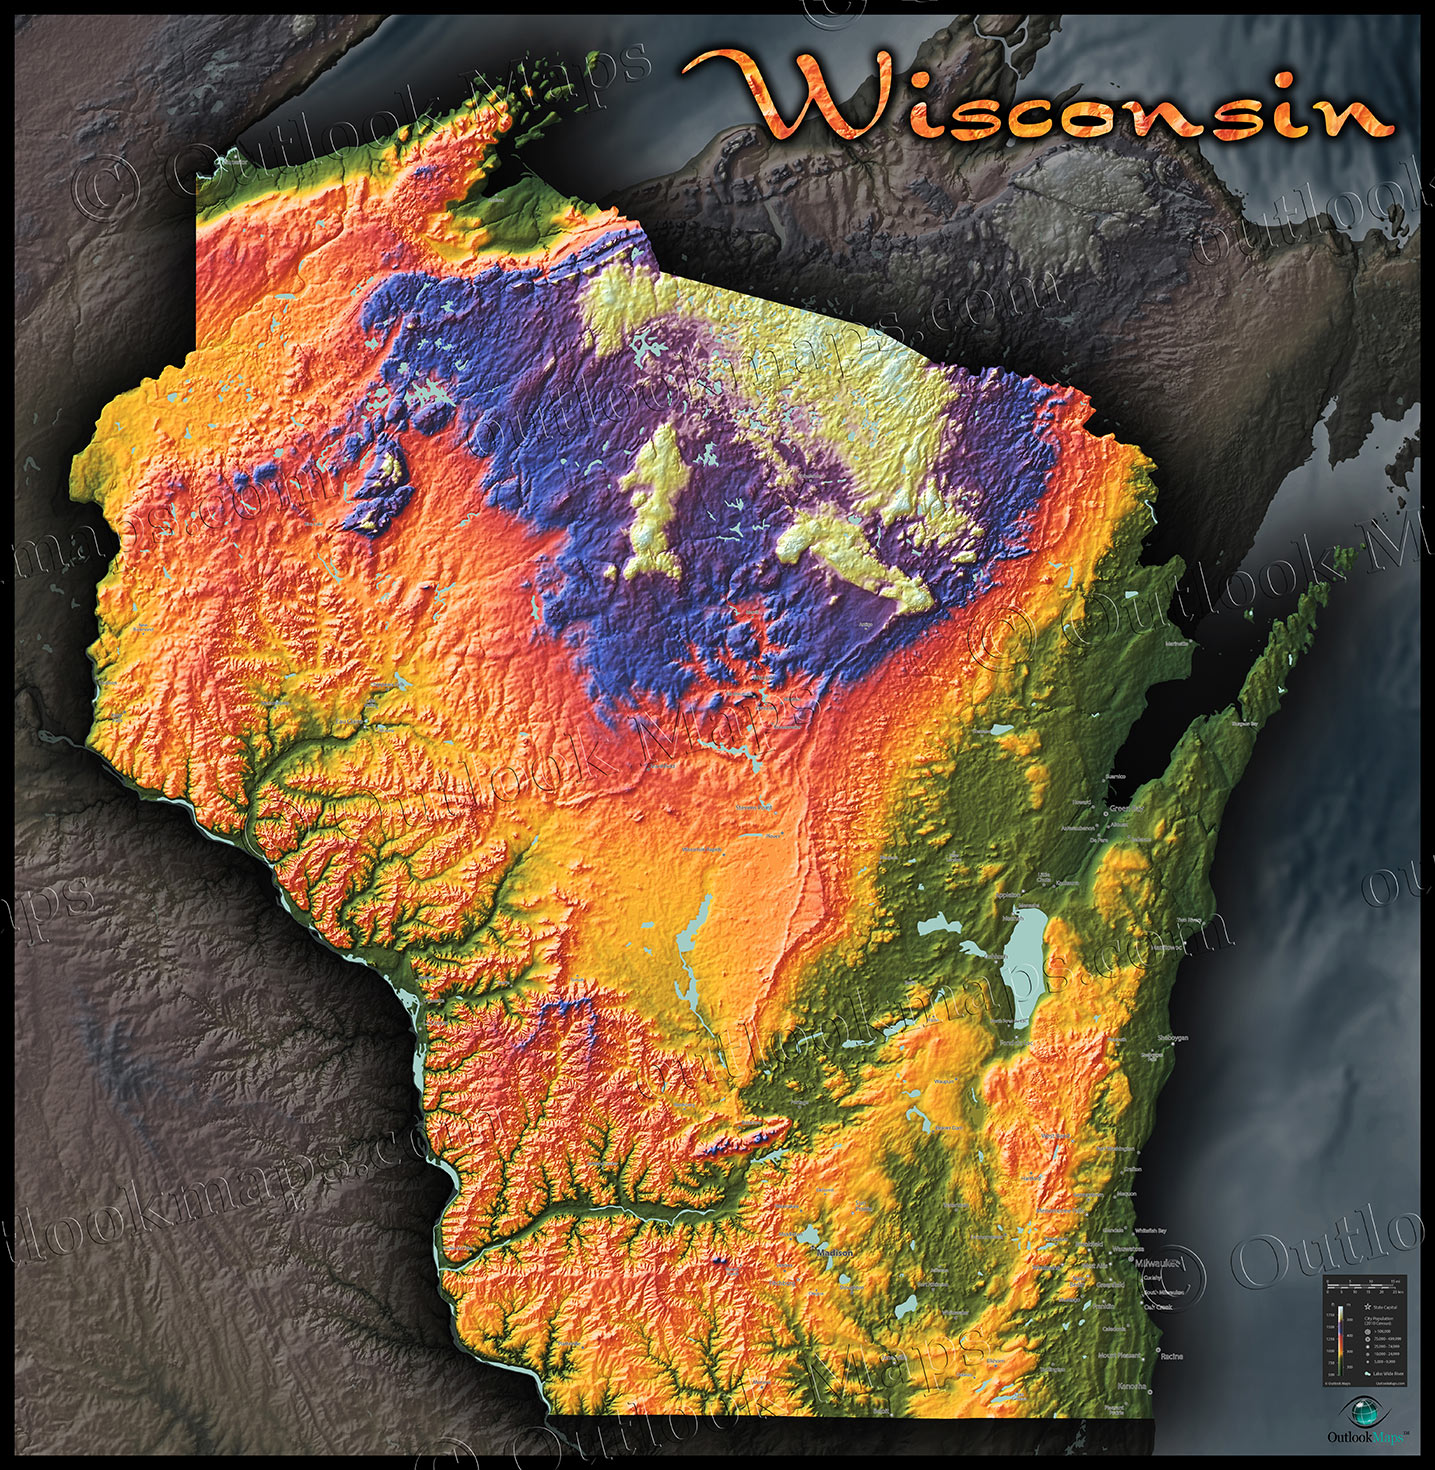 Wisconsin Topographic Map on largest inland lake in michigan, all cities in michigan, shape of michigan, silver lake michigan, northern michigan, lower peninsula of michigan, allenton michigan, branch county michigan, lansing michigan, troy michigan, major cities in michigan, thumb of michigan, state parks upper peninsula michigan, ellsworth michigan, tawas point lighthouse michigan, wildlife of michigan, saginaw michigan, people of michigan, battle creek michigan, white lake michigan,